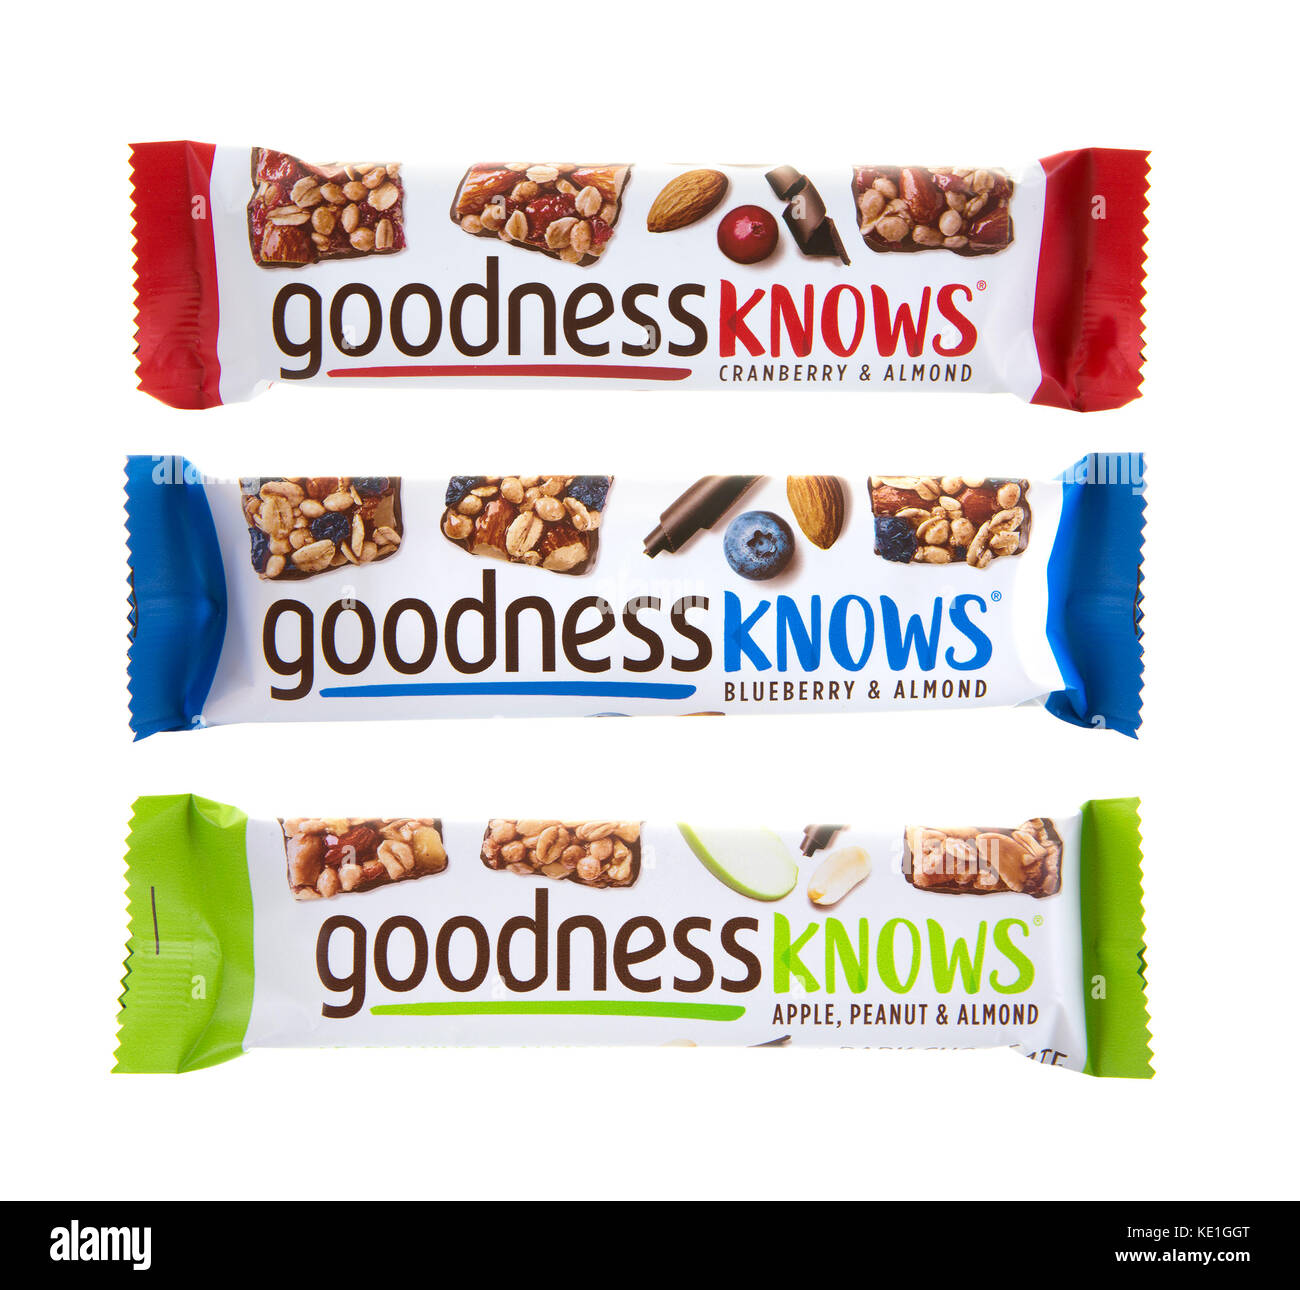 SWINDON, UK - OCTOBER 17, 2017: Three Goodness Knows Snack Bars on a white background - Stock Image